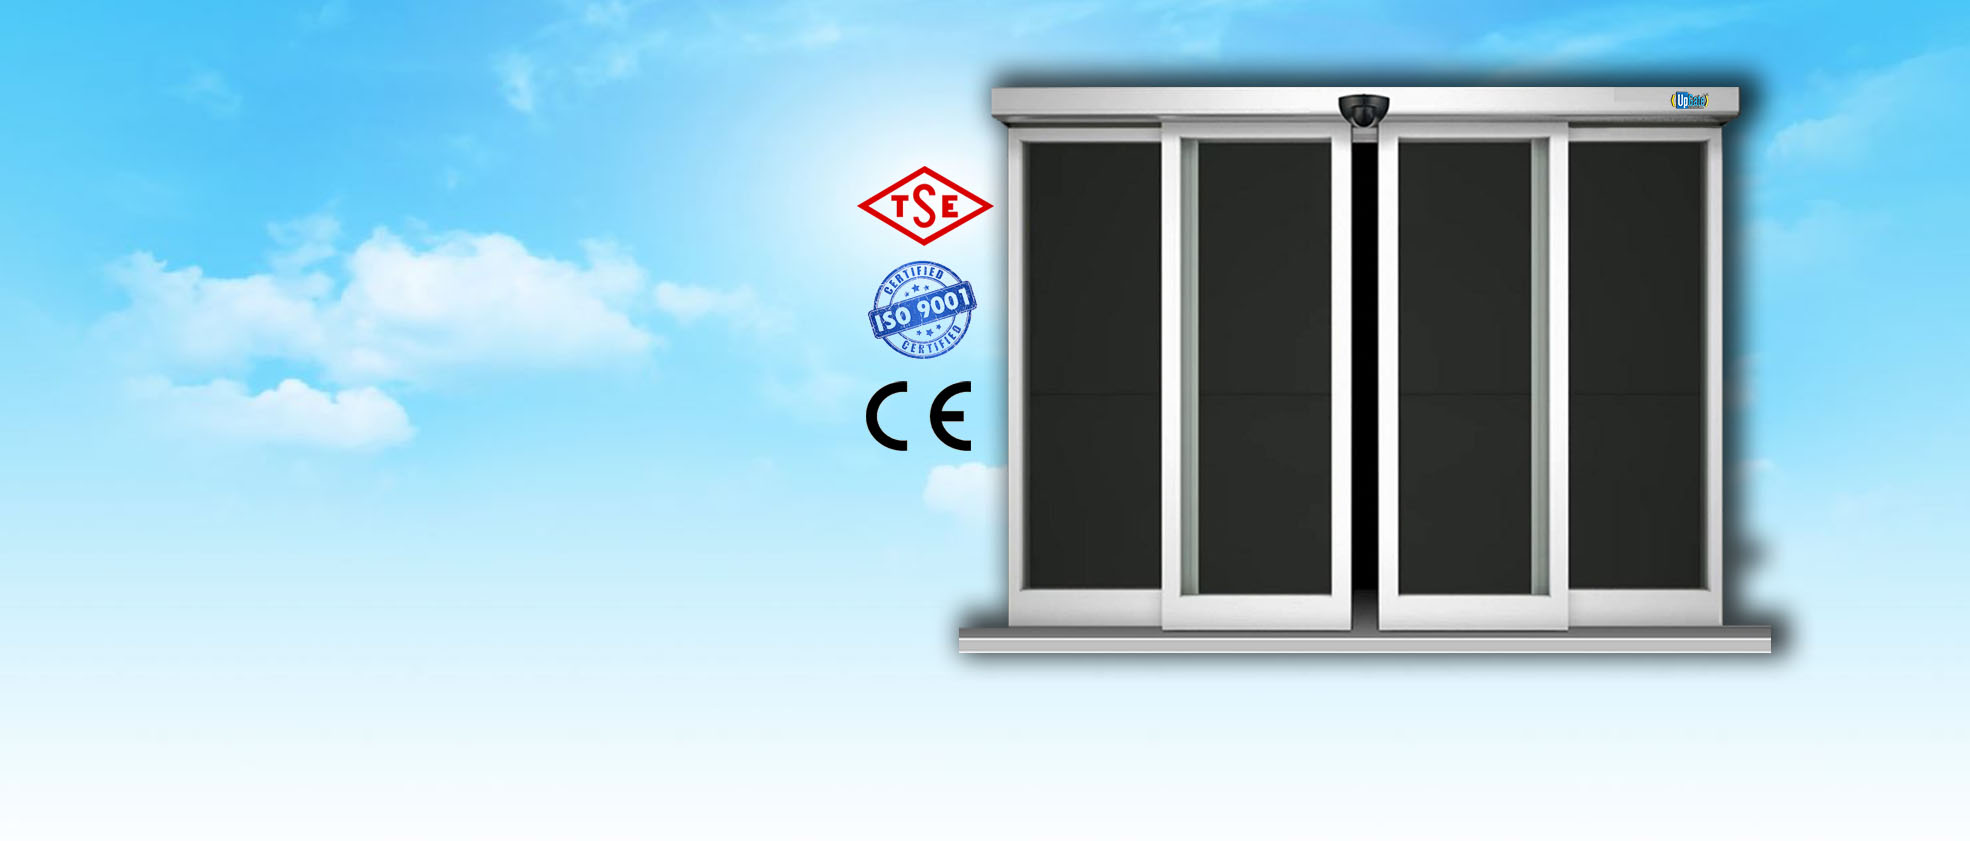 Photocell Door Systems Prices